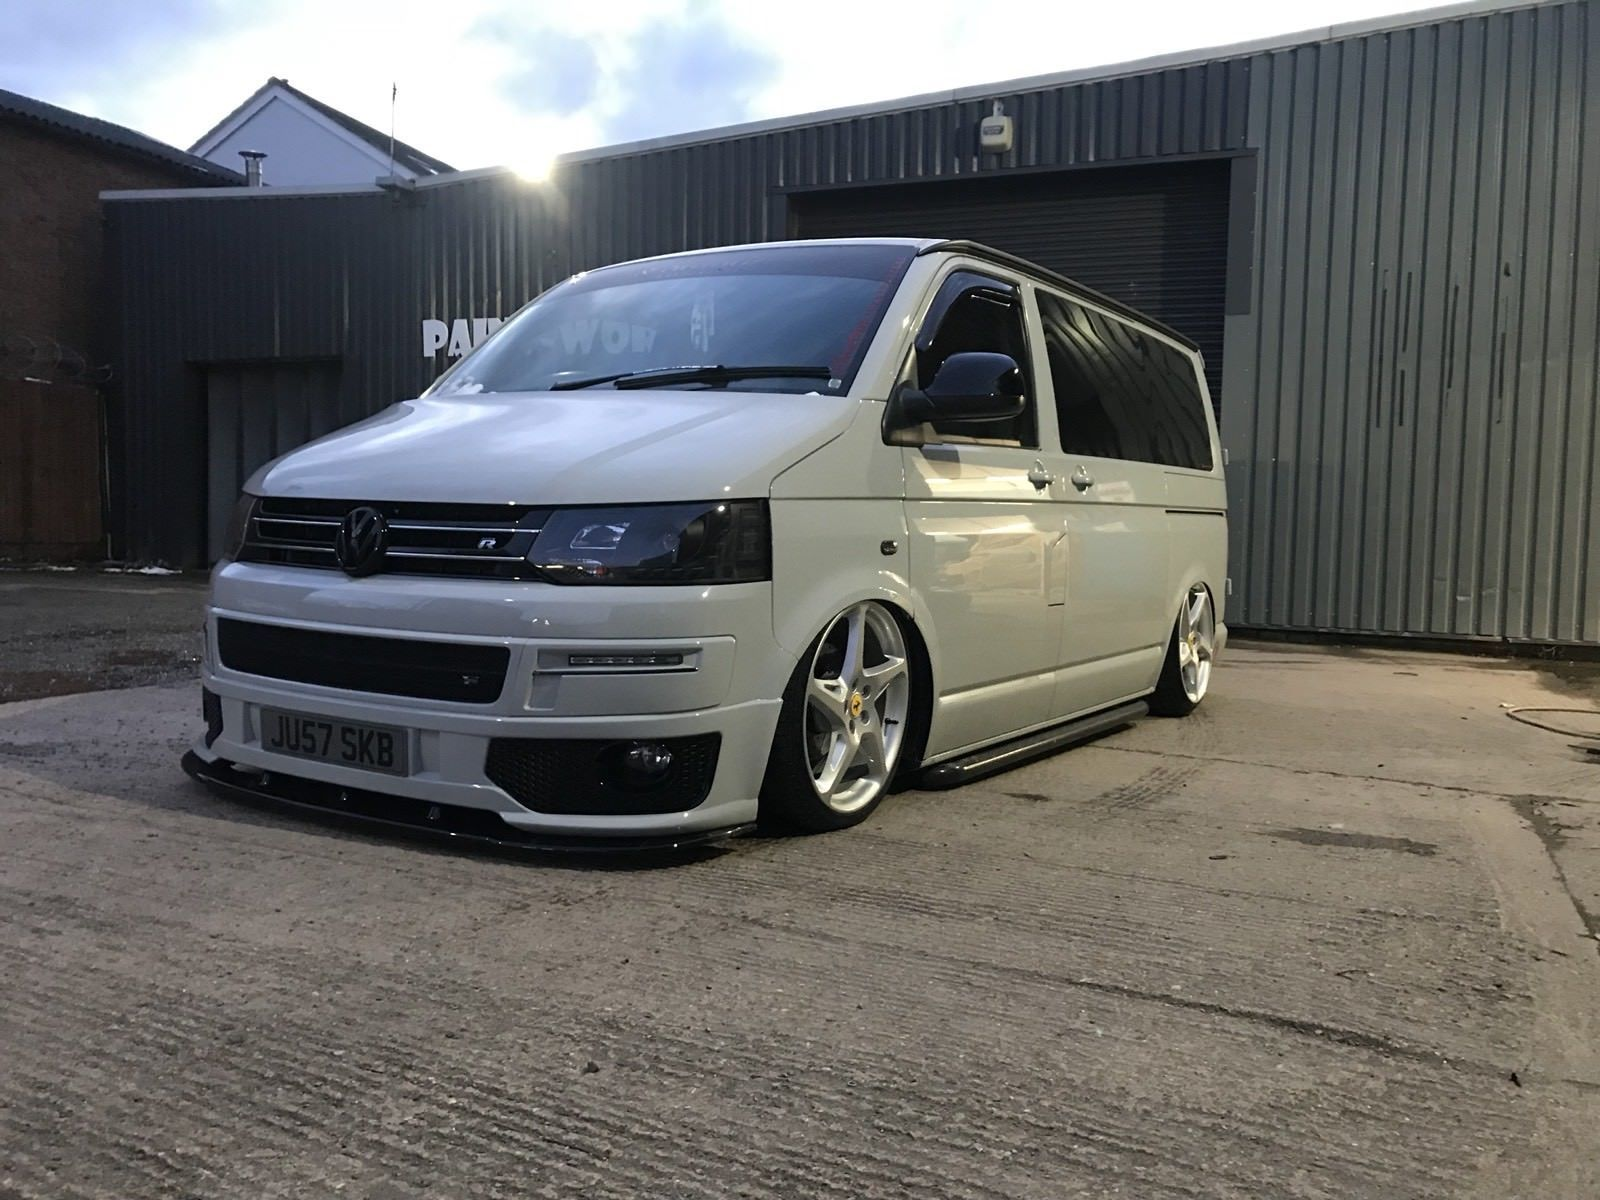 Ferrari 458 Alloys And Tyres For Vw Transporter And Adaptors